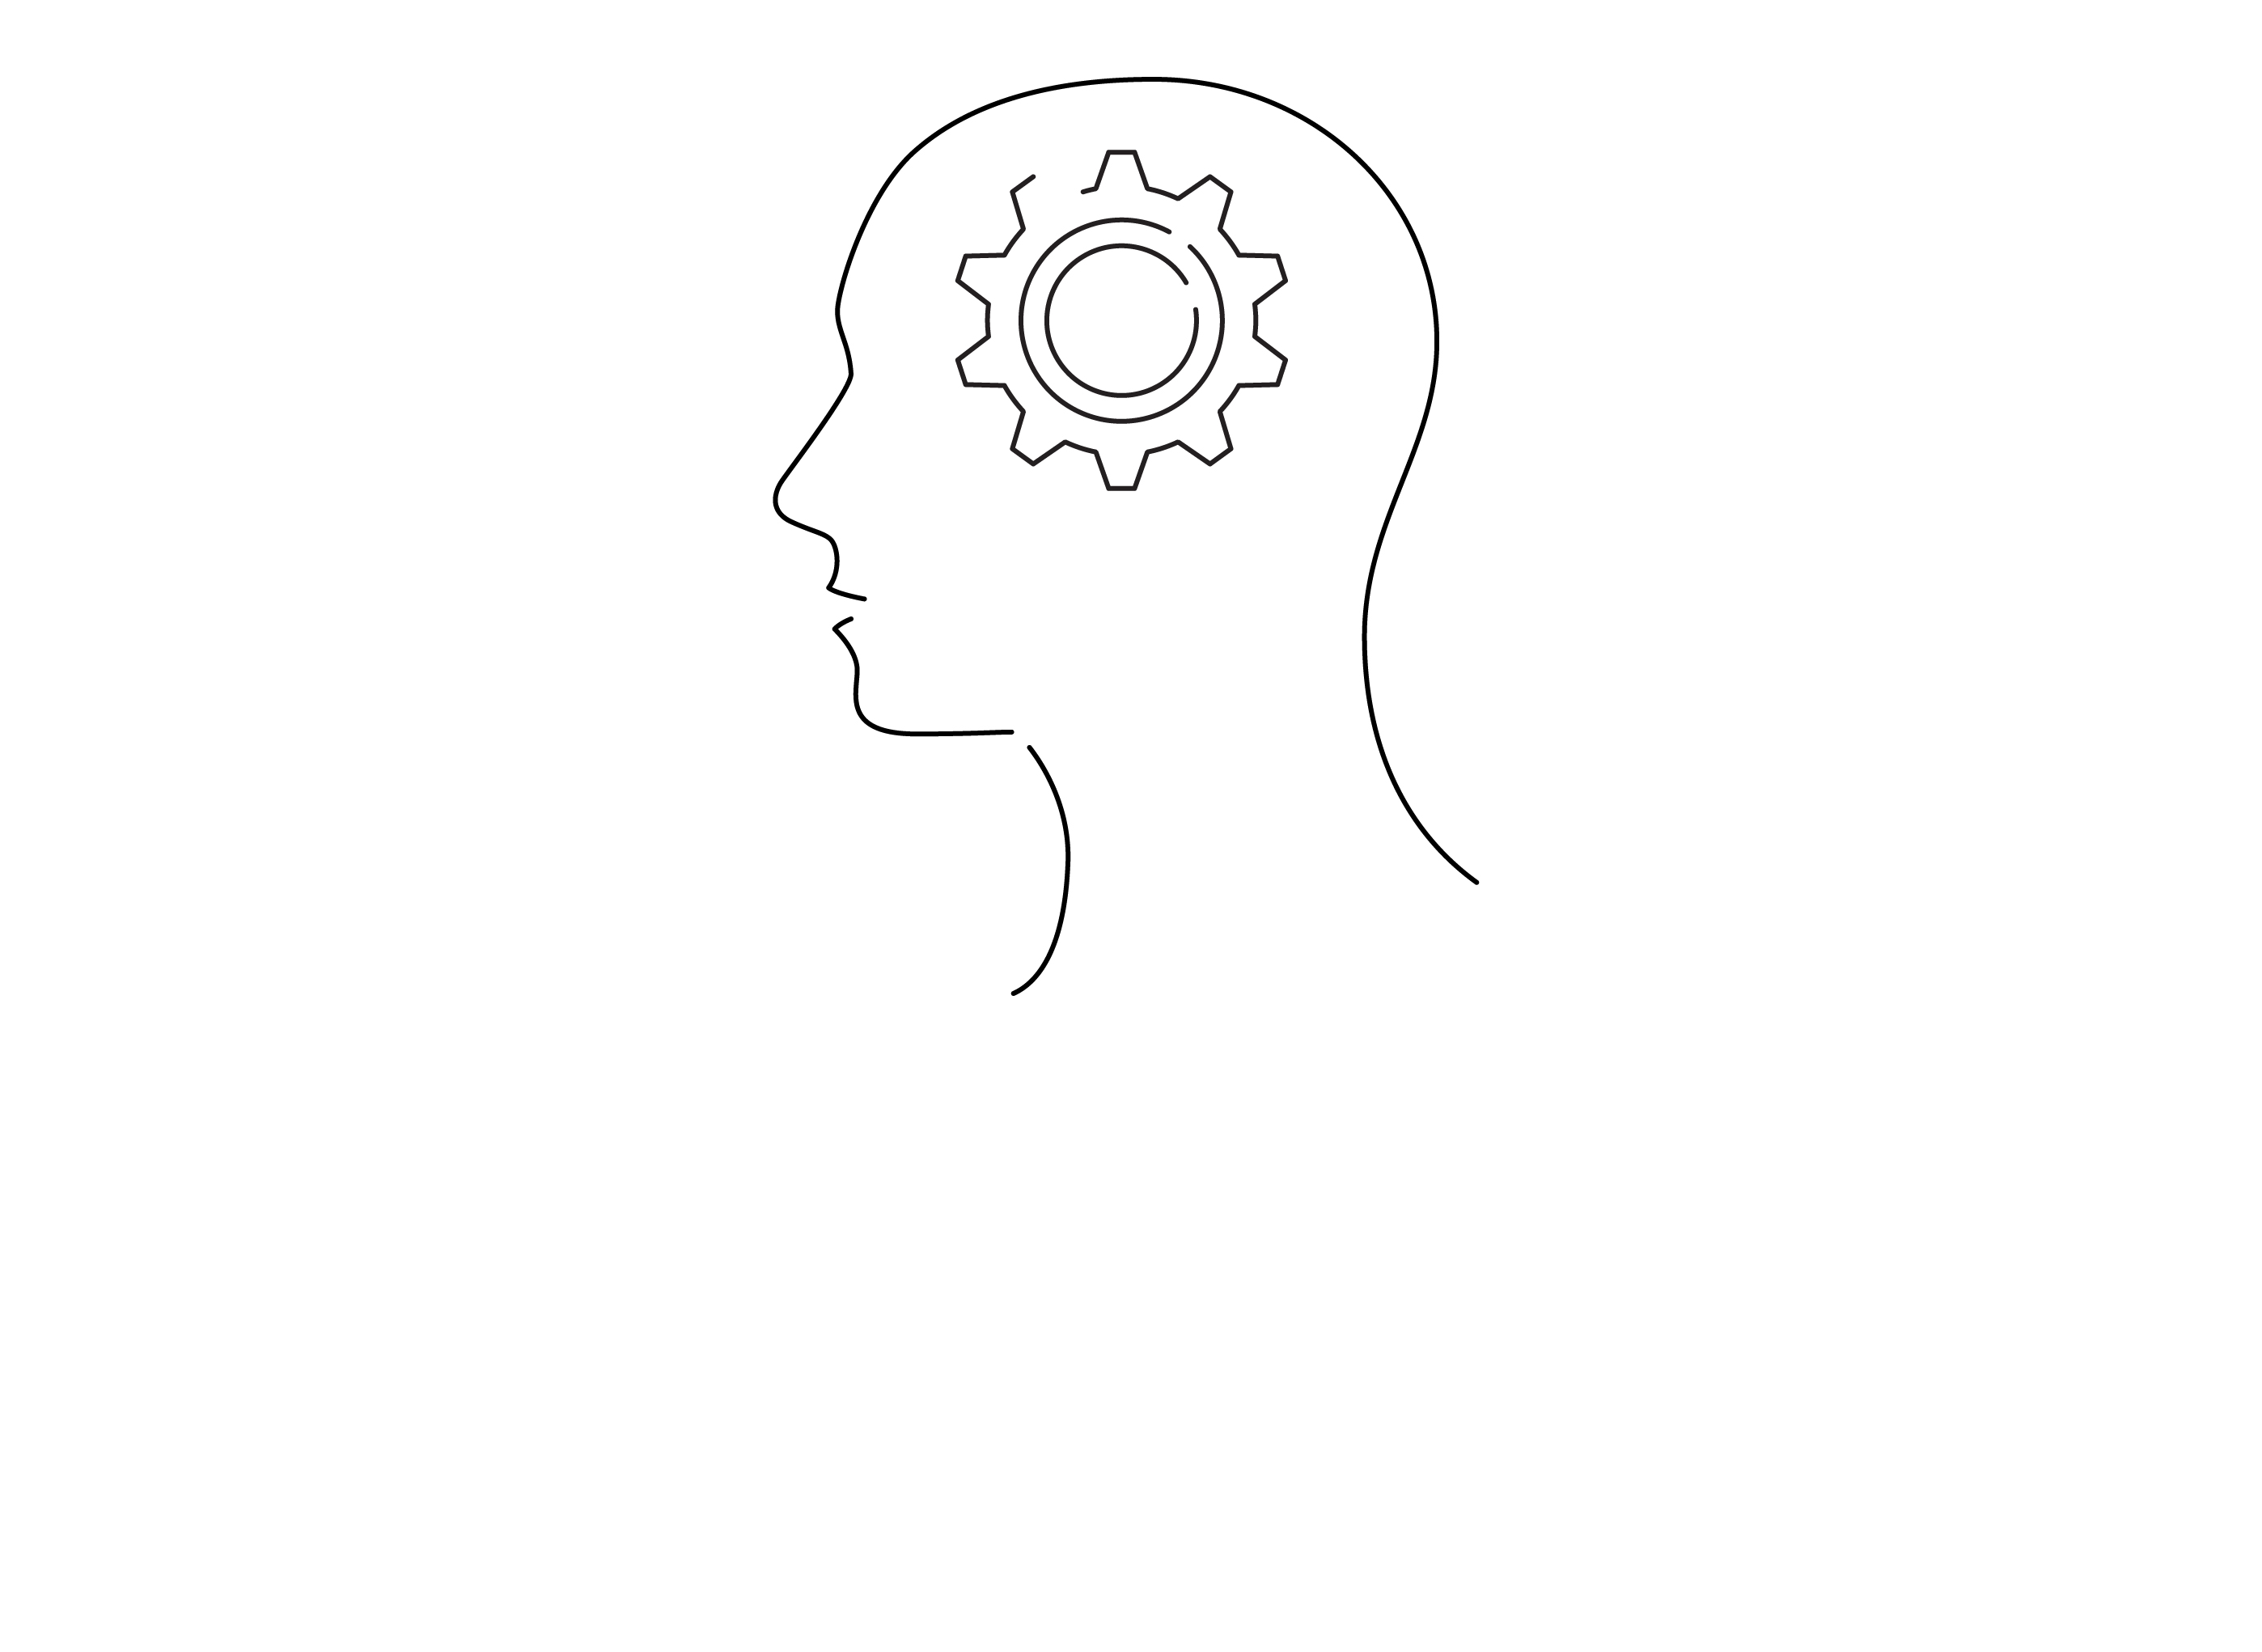 icon of a head with a gear in it, indicates thinking